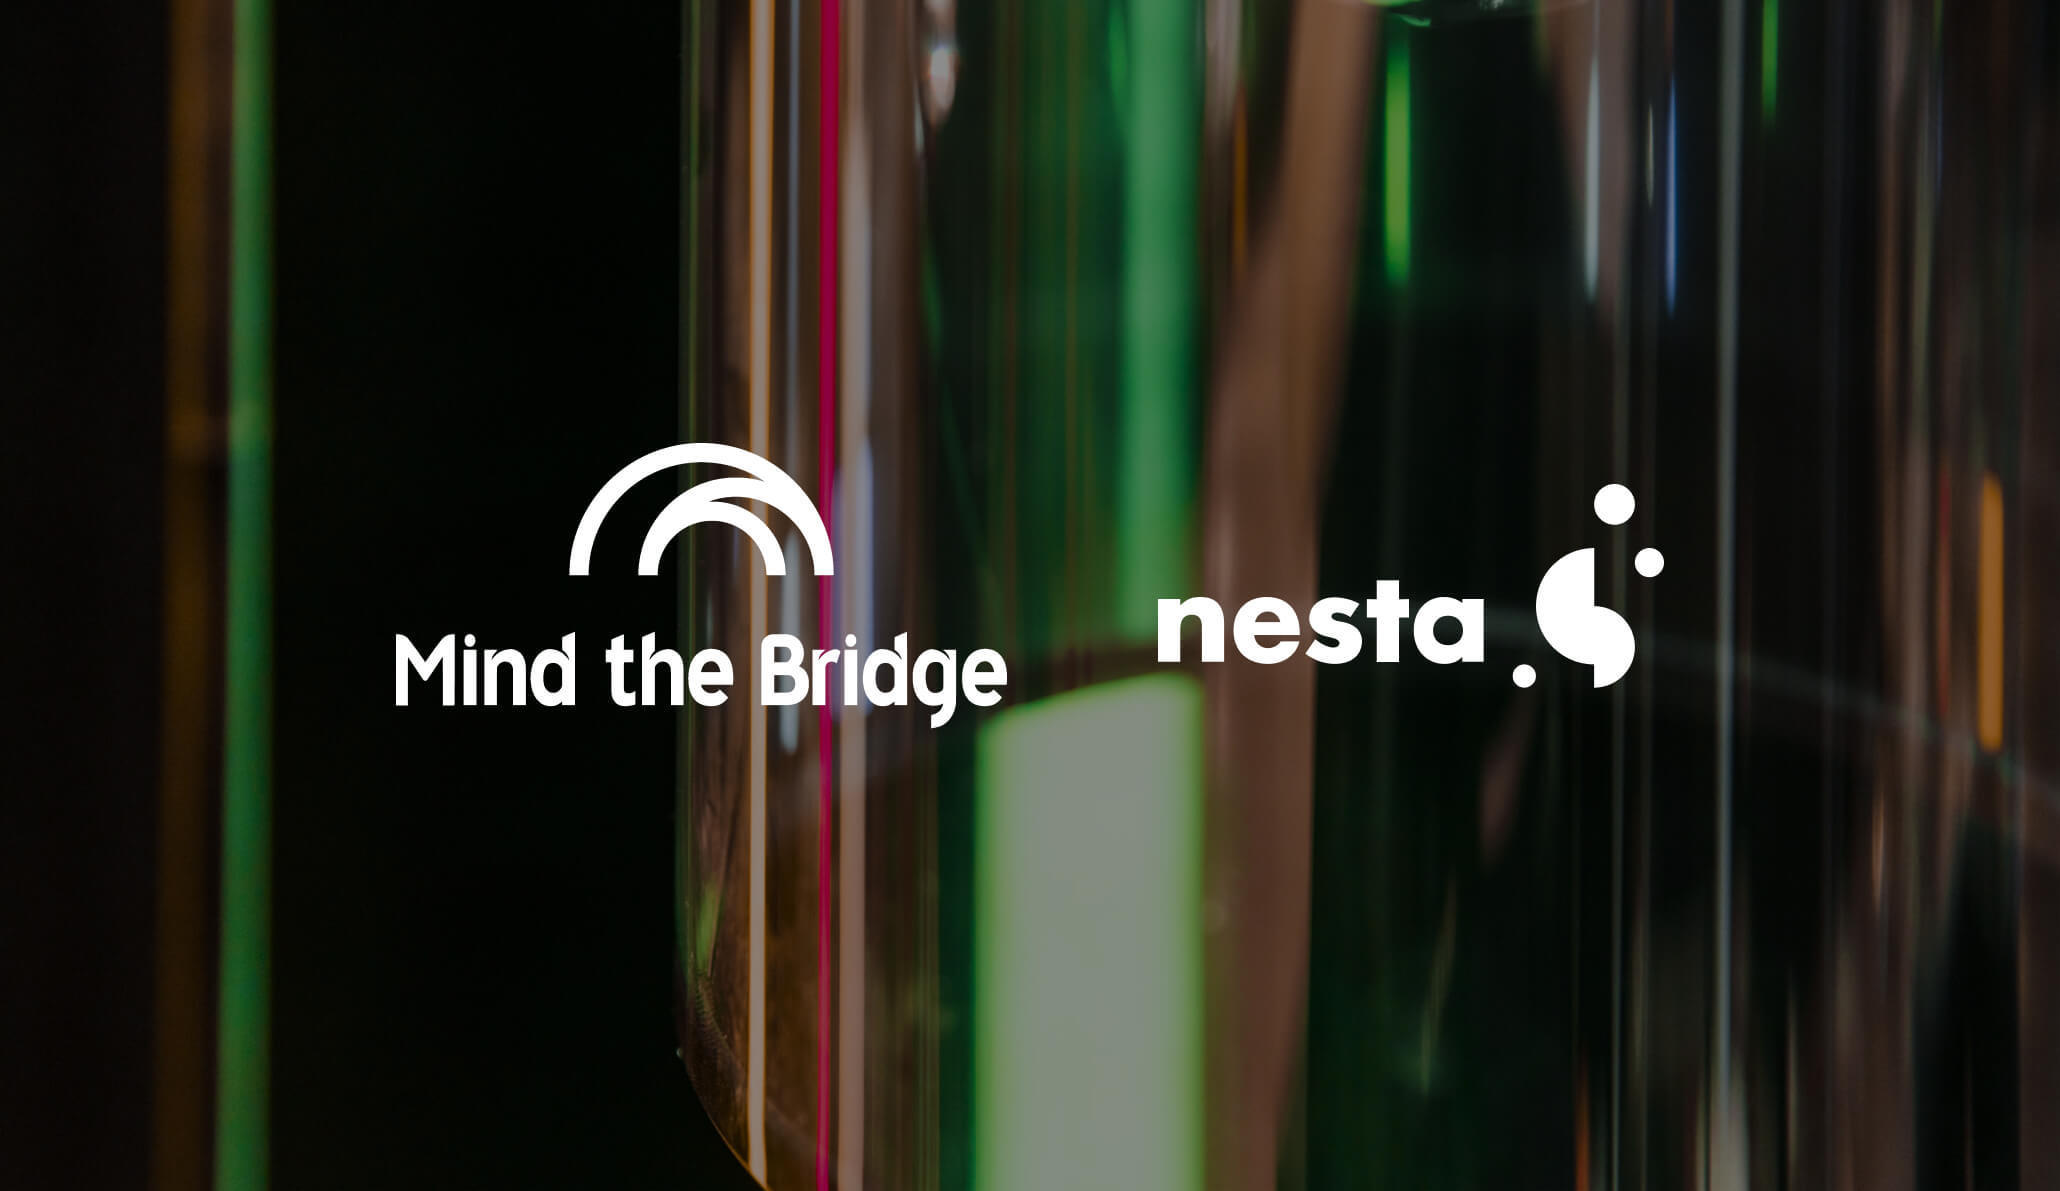 The Mind the Bridge and Nesta logo on top of an image of an obscured award